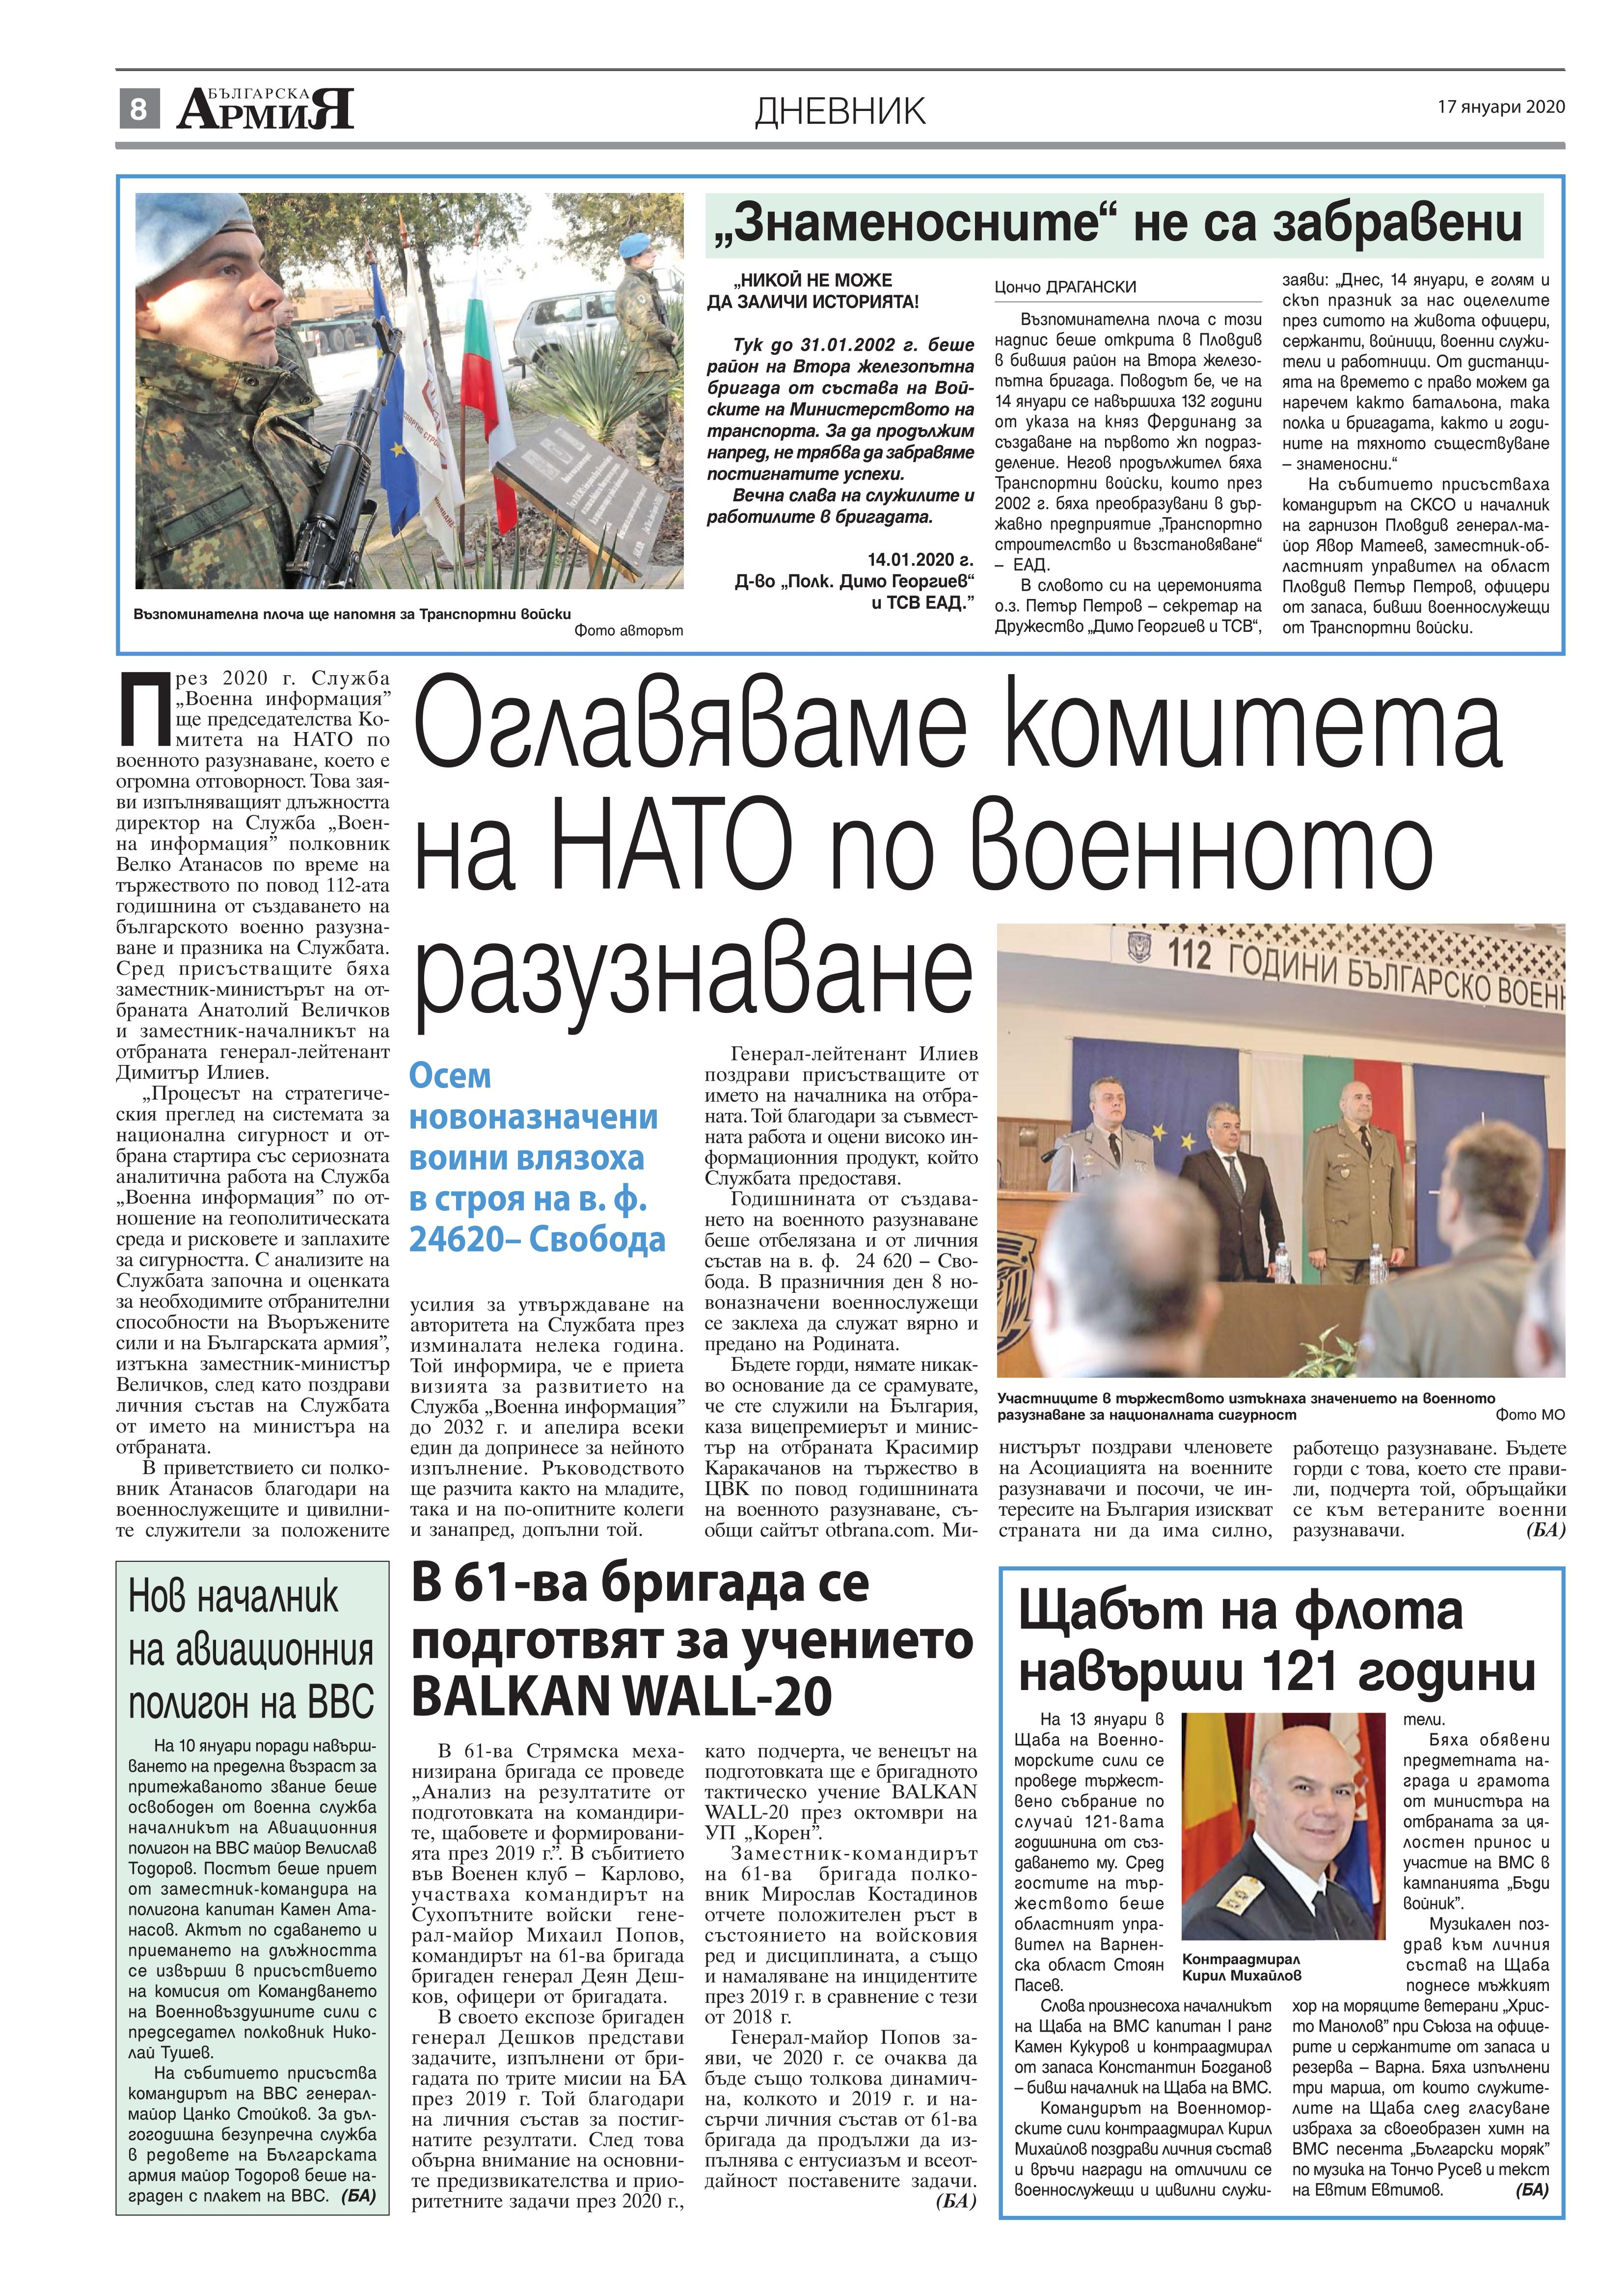 https://www.armymedia.bg/wp-content/uploads/2015/06/08.page1_-120.jpg